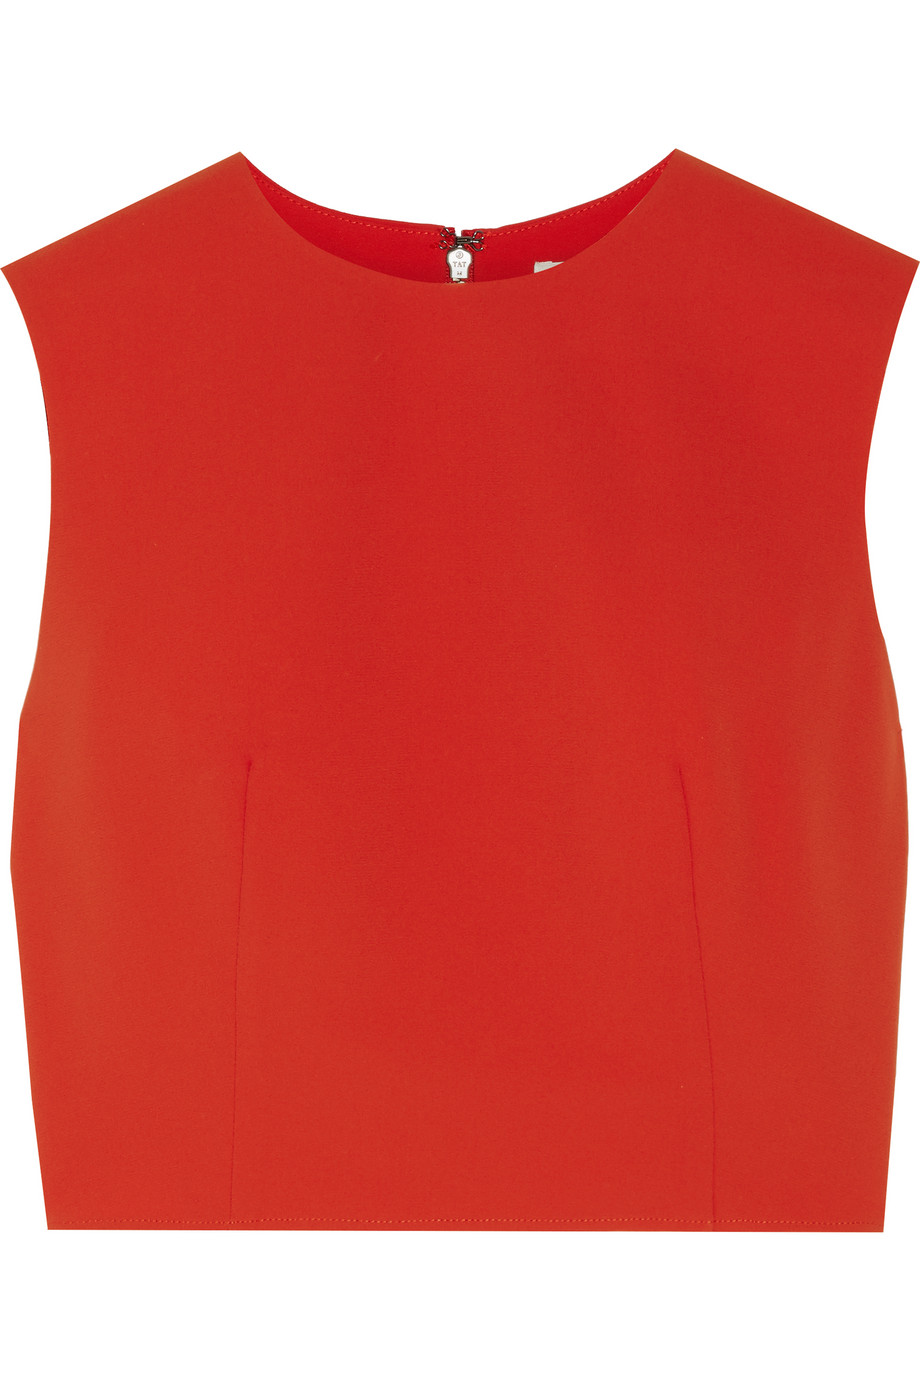 Alice + Olivia Klynn Crepe Top, Red, Women's, Size: XS